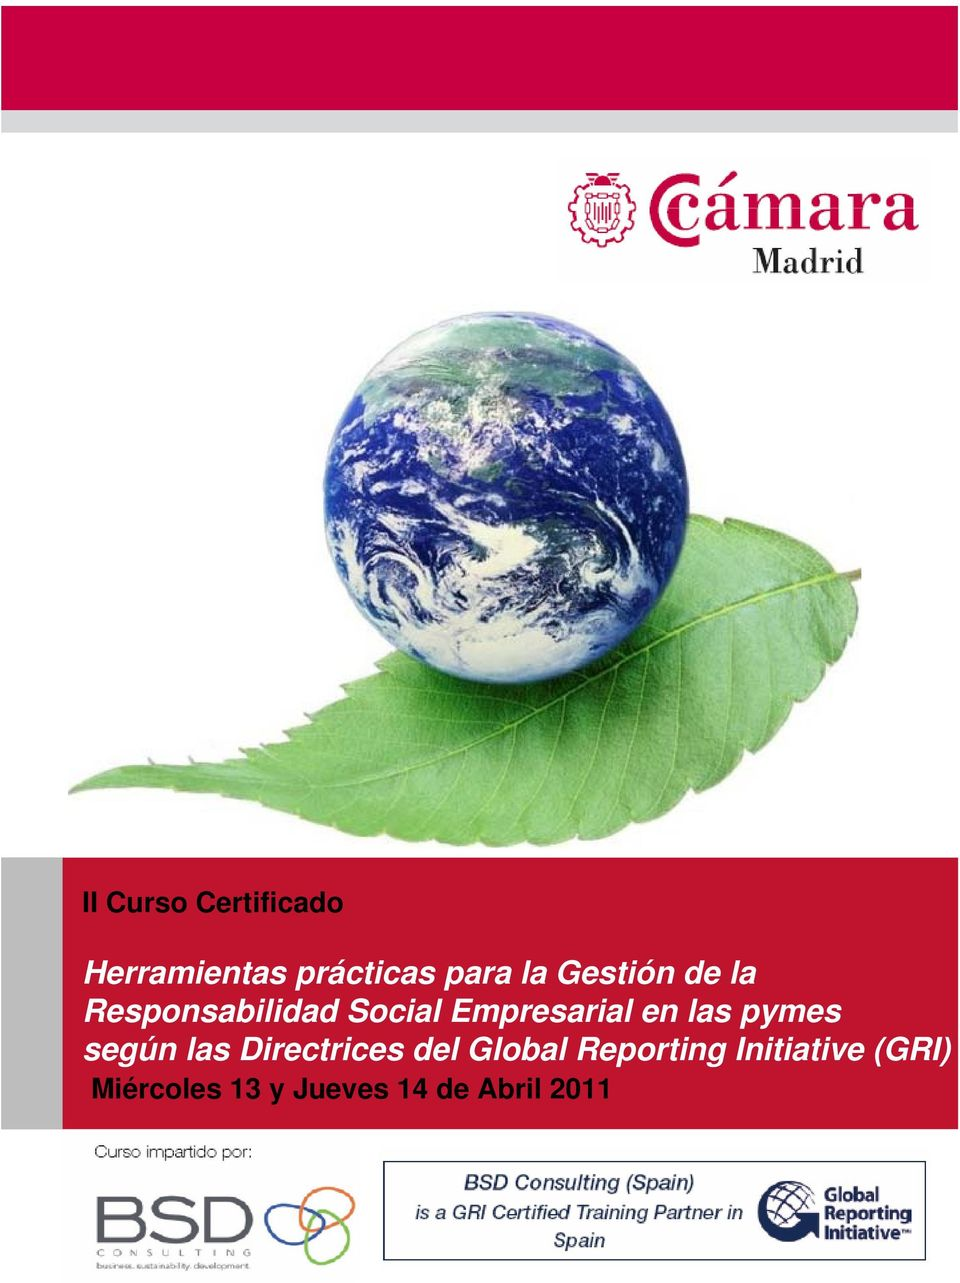 las pymes según las Directrices del Global Reporting